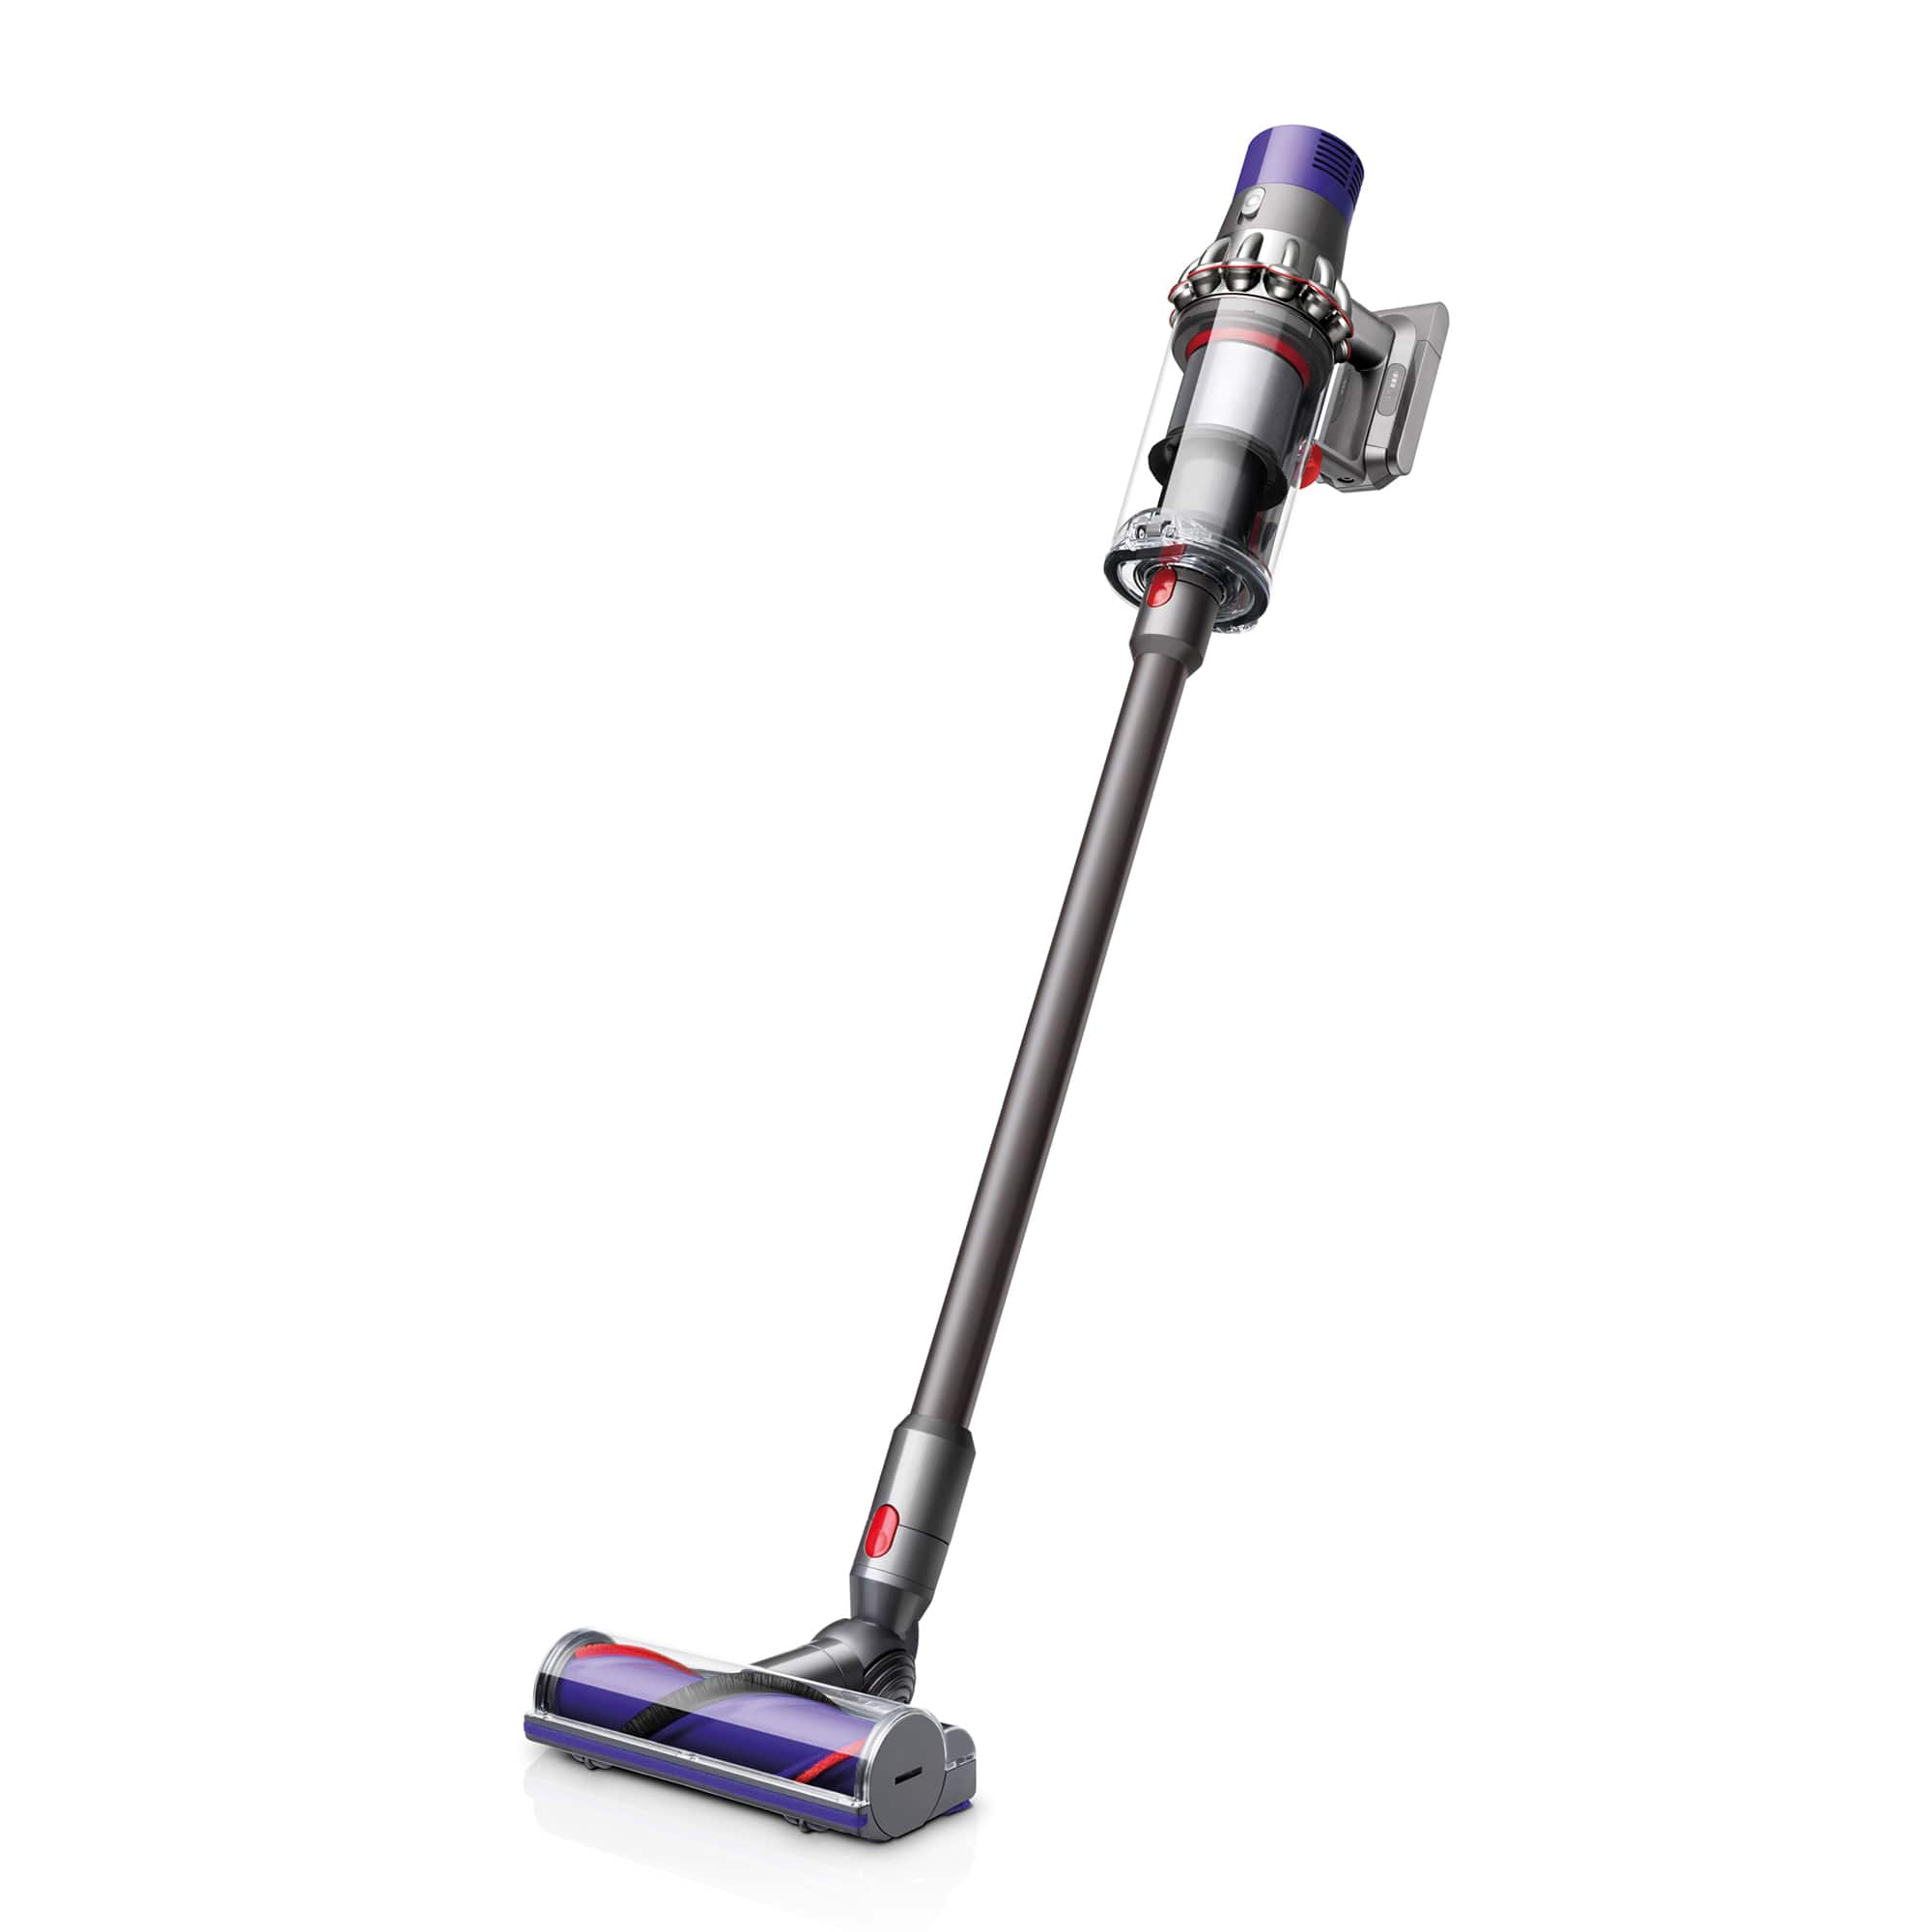 New Price Drop Dyson V10 Total Clean Cordless Vacuum Cleaner (Refurbished, Iron) $269.99 + Free S&H Walmart.com